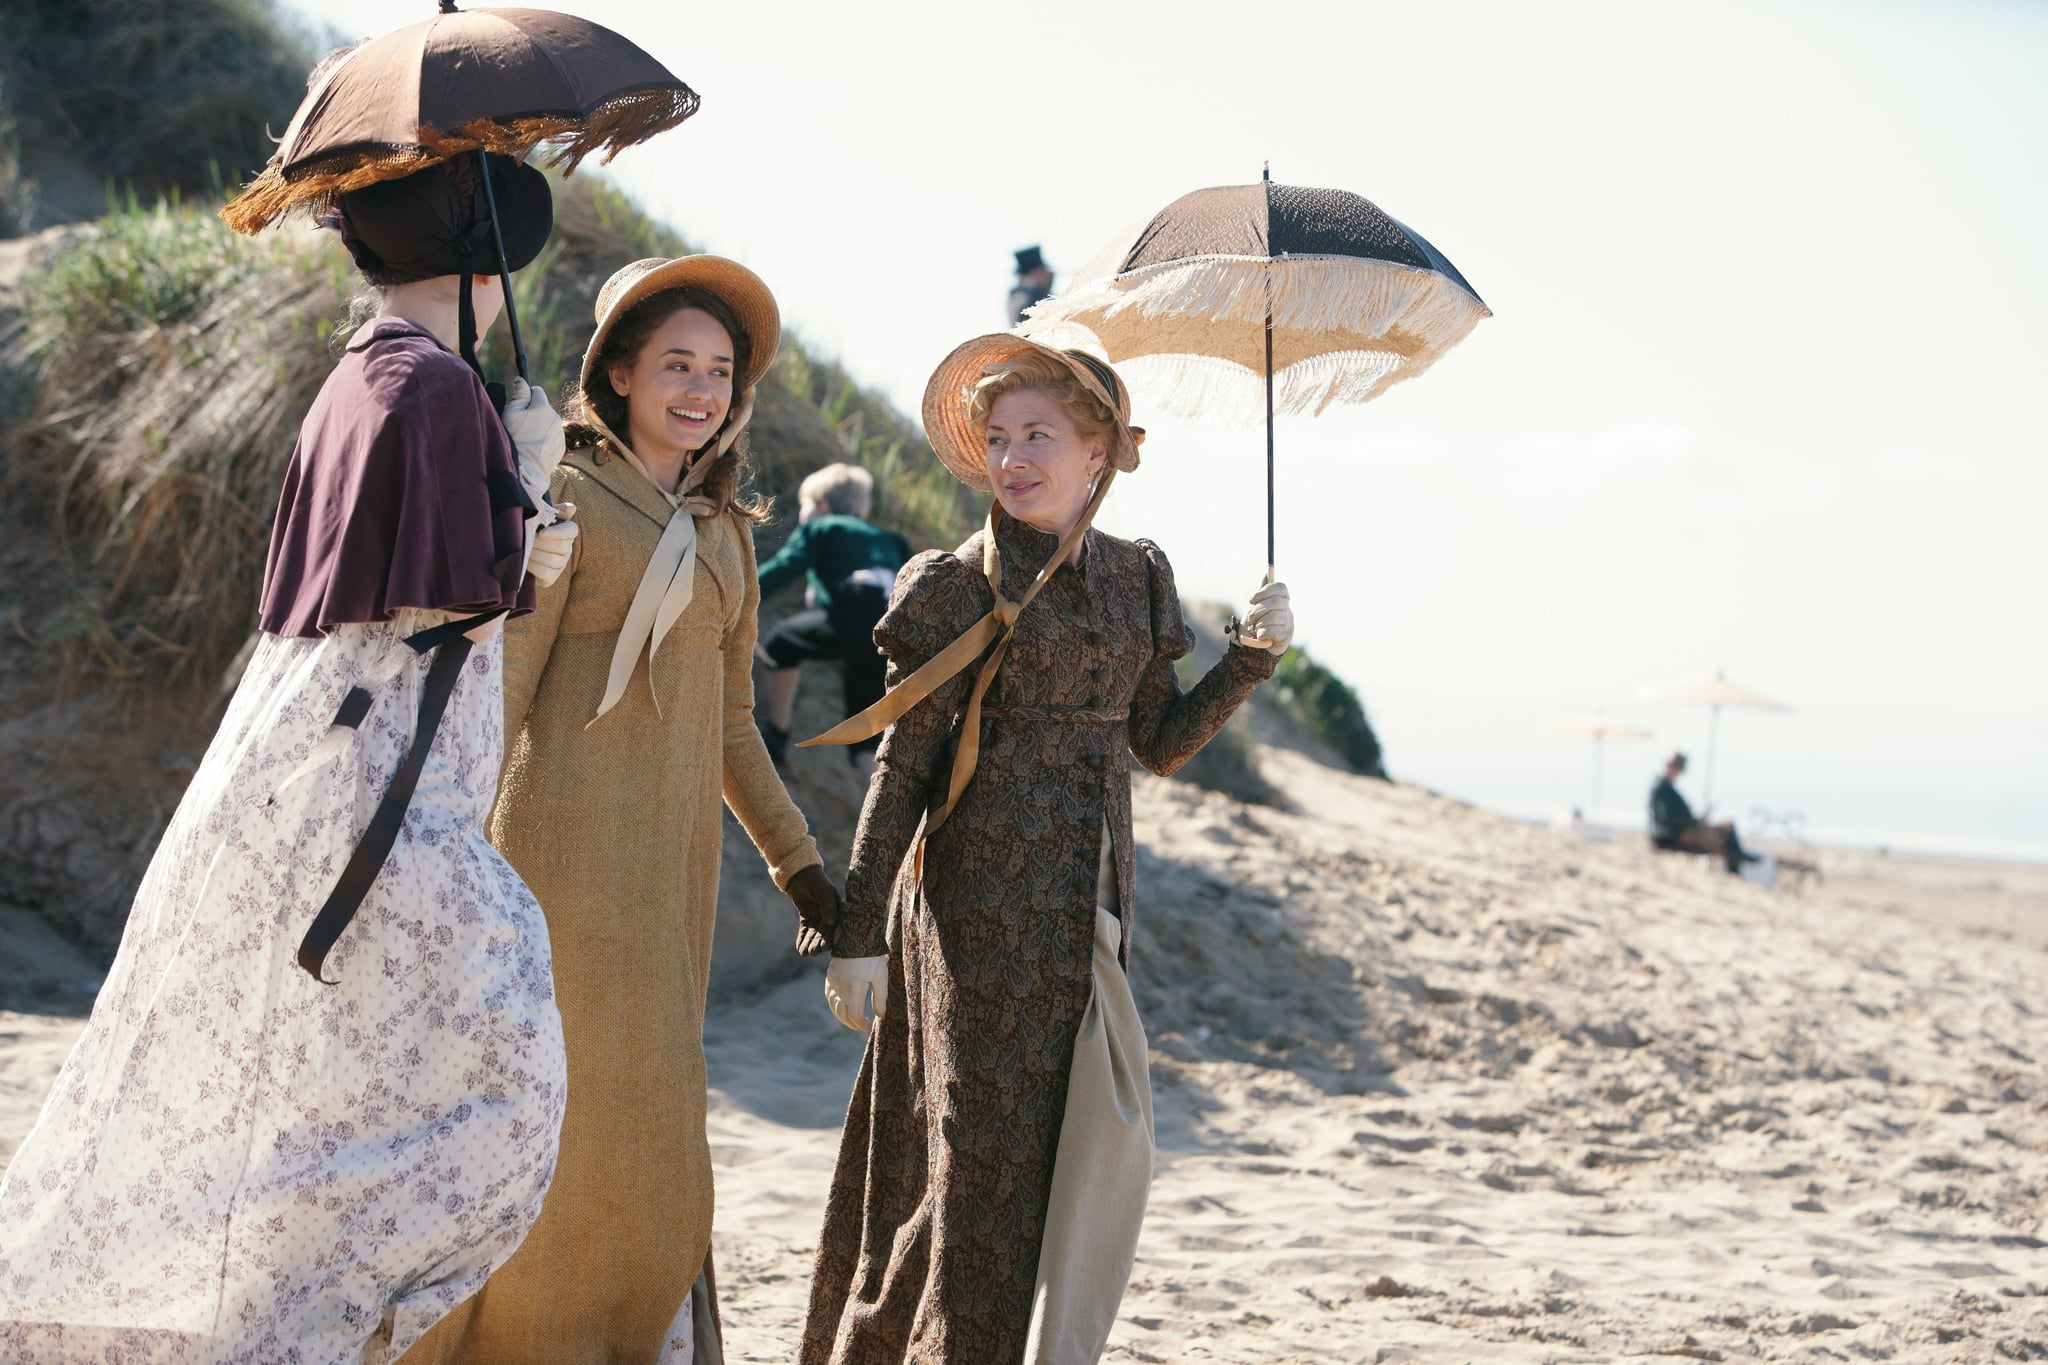 SANDITON, from left: Lily Sacofsky, Rose Williams, Kate Ashfield, (Season 1, ep. 101, aired in the US on Jan. 12, 2020/aired in the UK on Aug. 25, 2019). photo: Simon Ridgway / PBS/Red Planet Pictures / courtesy: Everett Collection